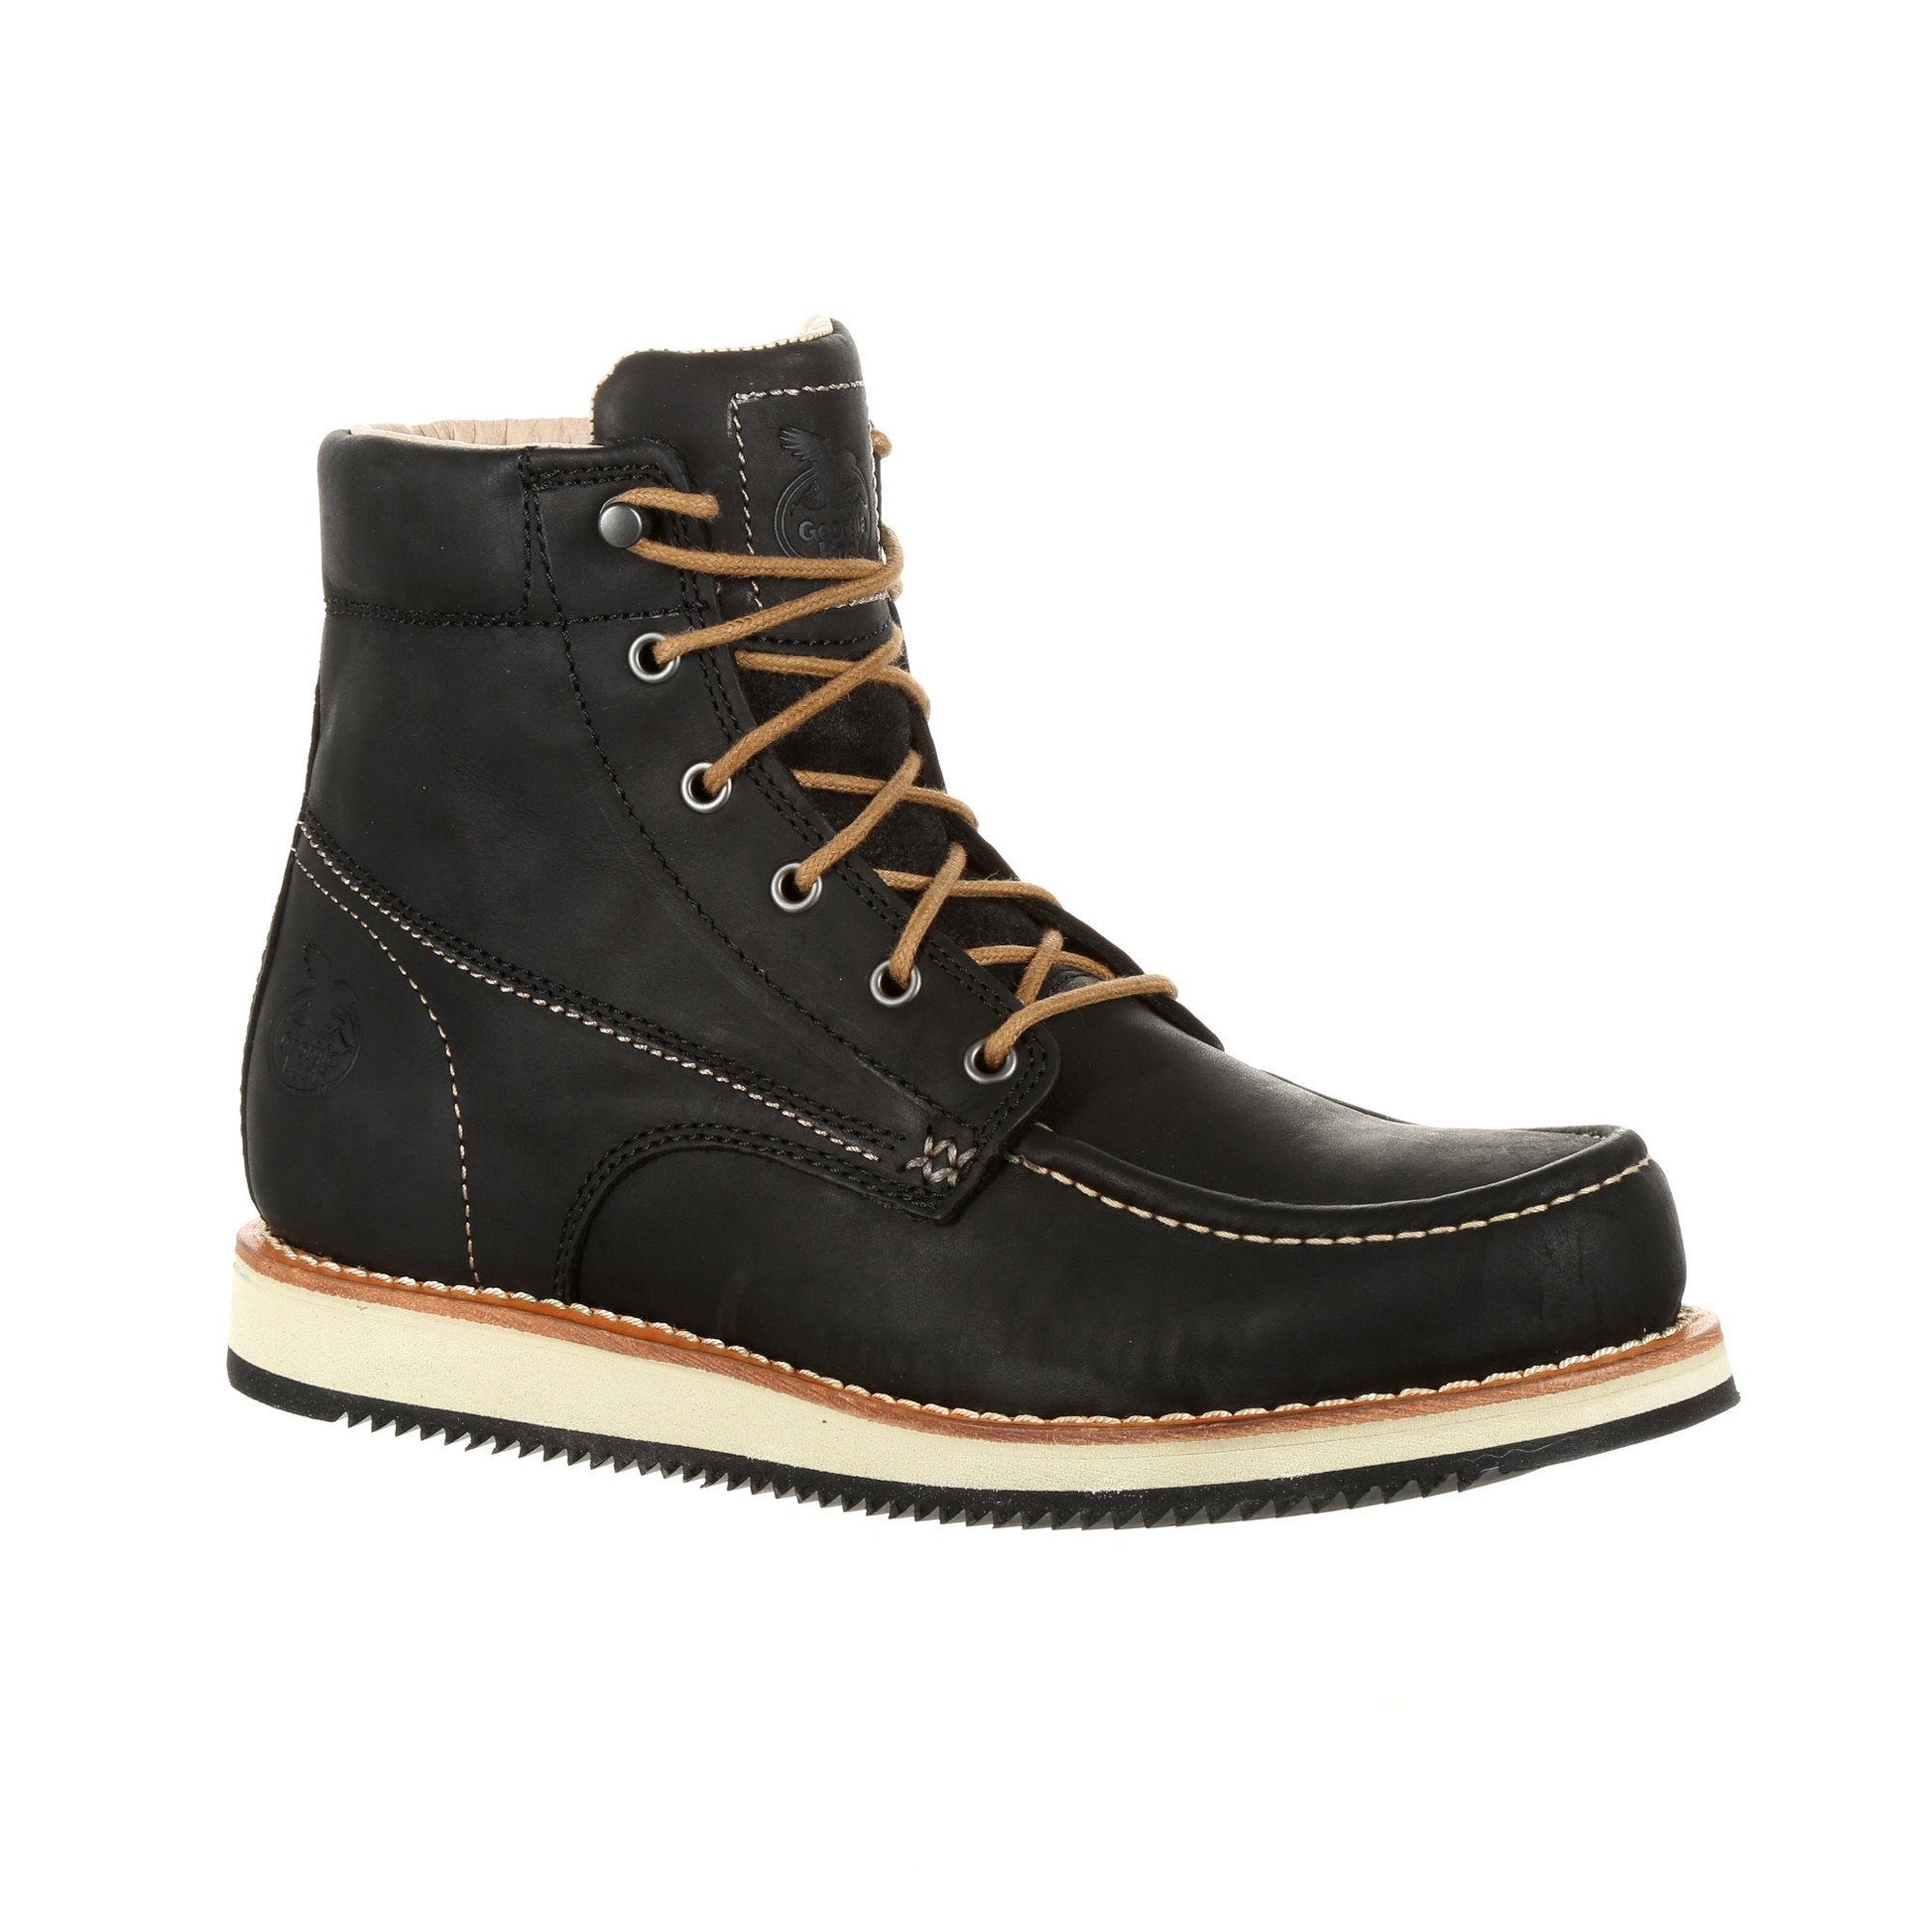 Georgia Mens Black Leather Small Batch Wedge Ankle Boots